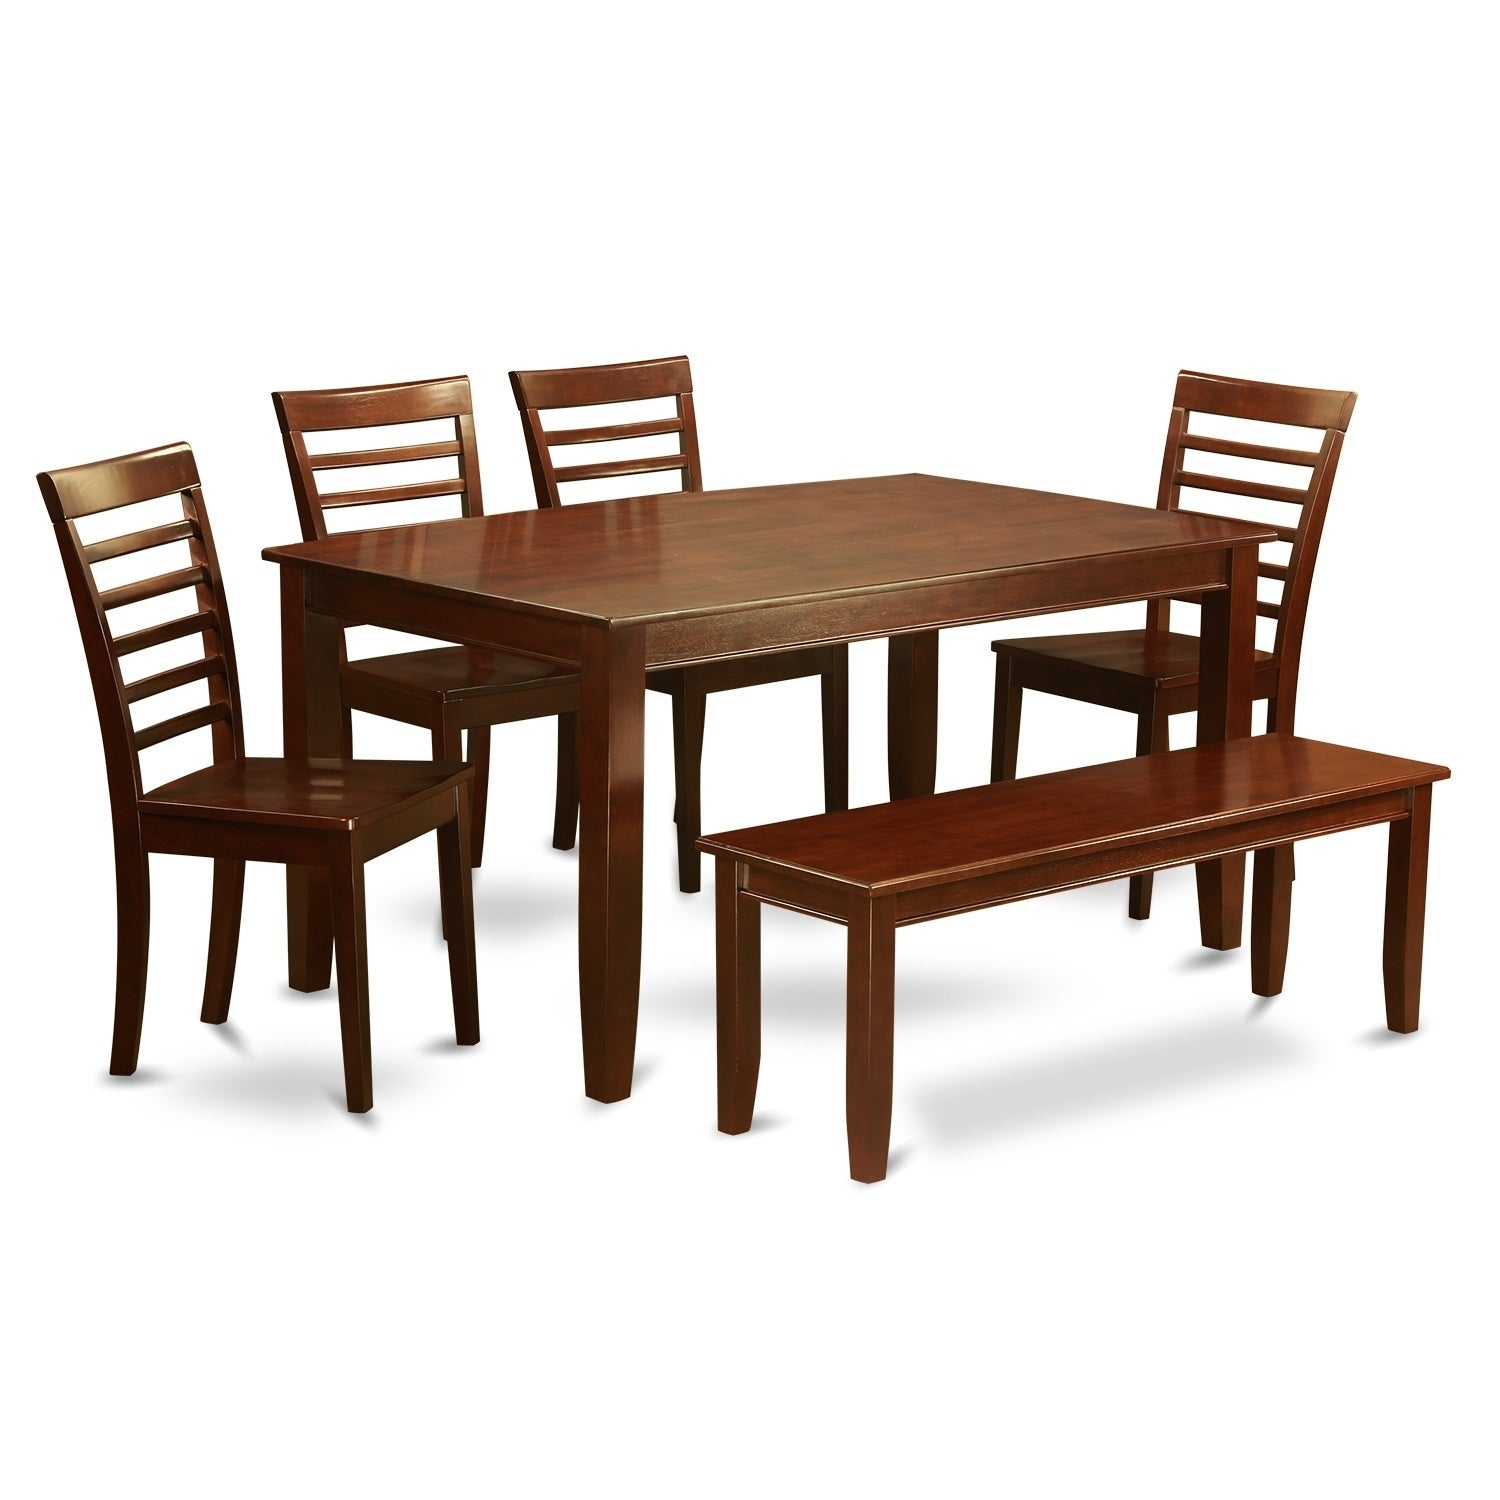 DUML6D MAH 6 Pc Dining Set  Dining Table With 4 Chairs Plus Bench   Free  Shipping Today   Overstock   23885022